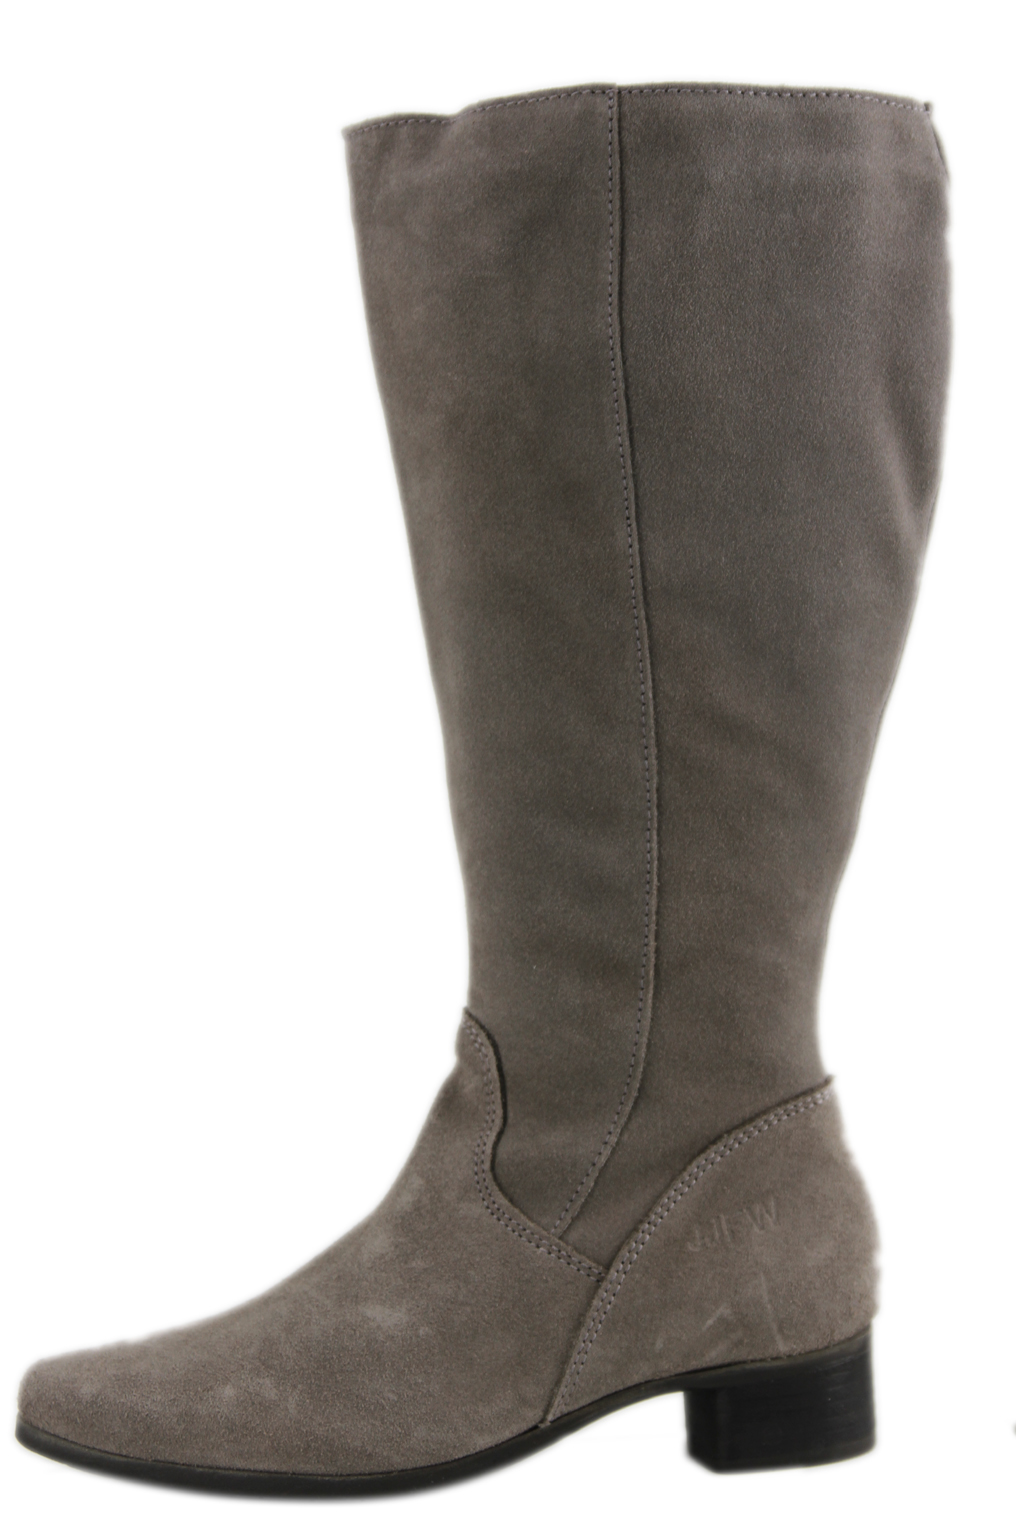 Shoes , Gorgeous Boots For Big CalvesPhoto Gallery : Fabulous  Grey Boots For Wide Calves Image Gallery